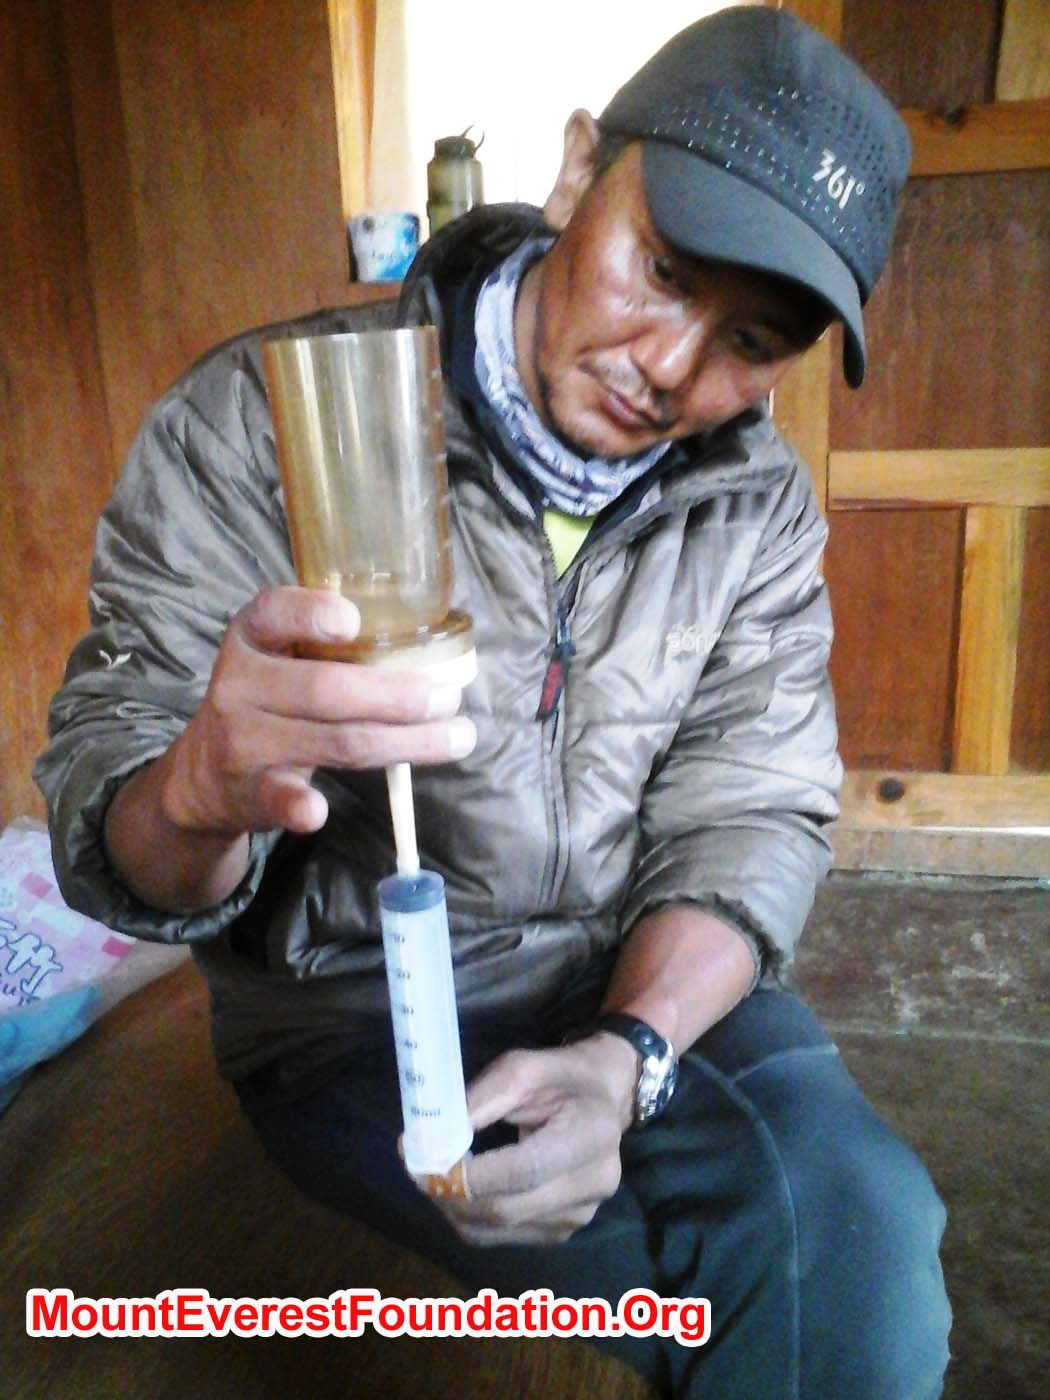 Thile Nuru Sherpa filters a water sample through a petri dish innoculation grid